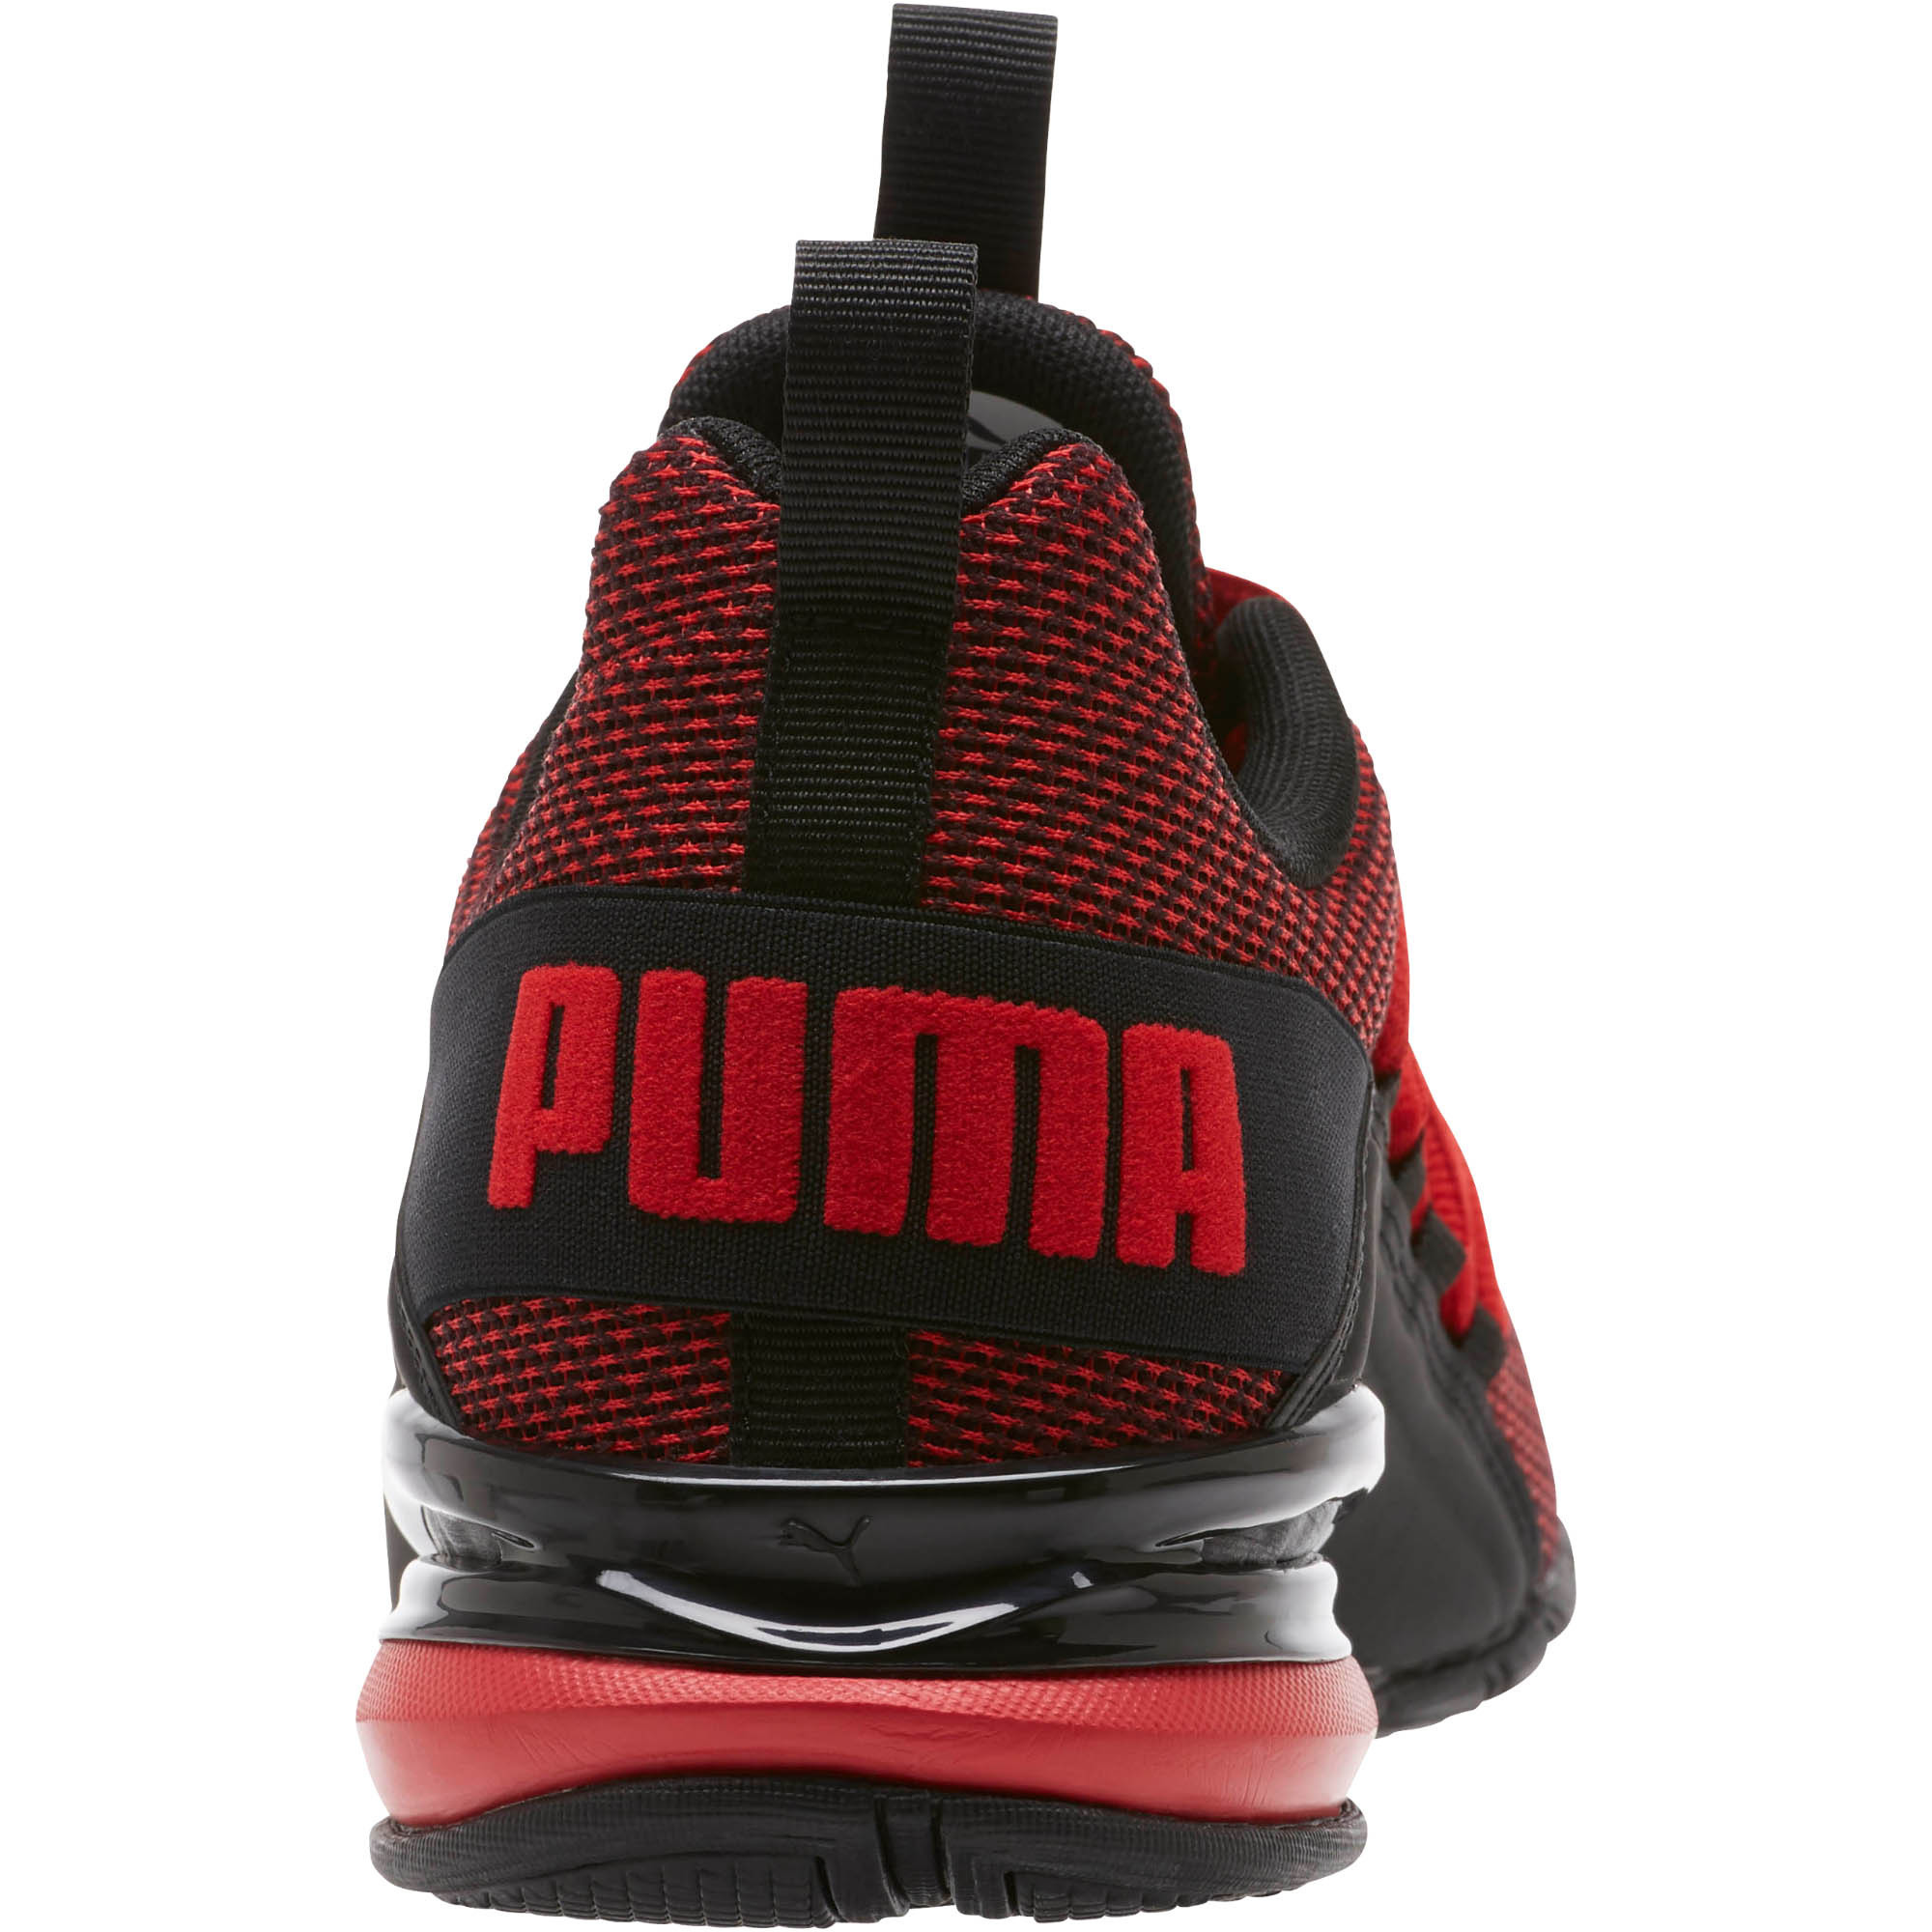 PUMA-Men-039-s-Axelion-Mesh-Training-Shoes thumbnail 3